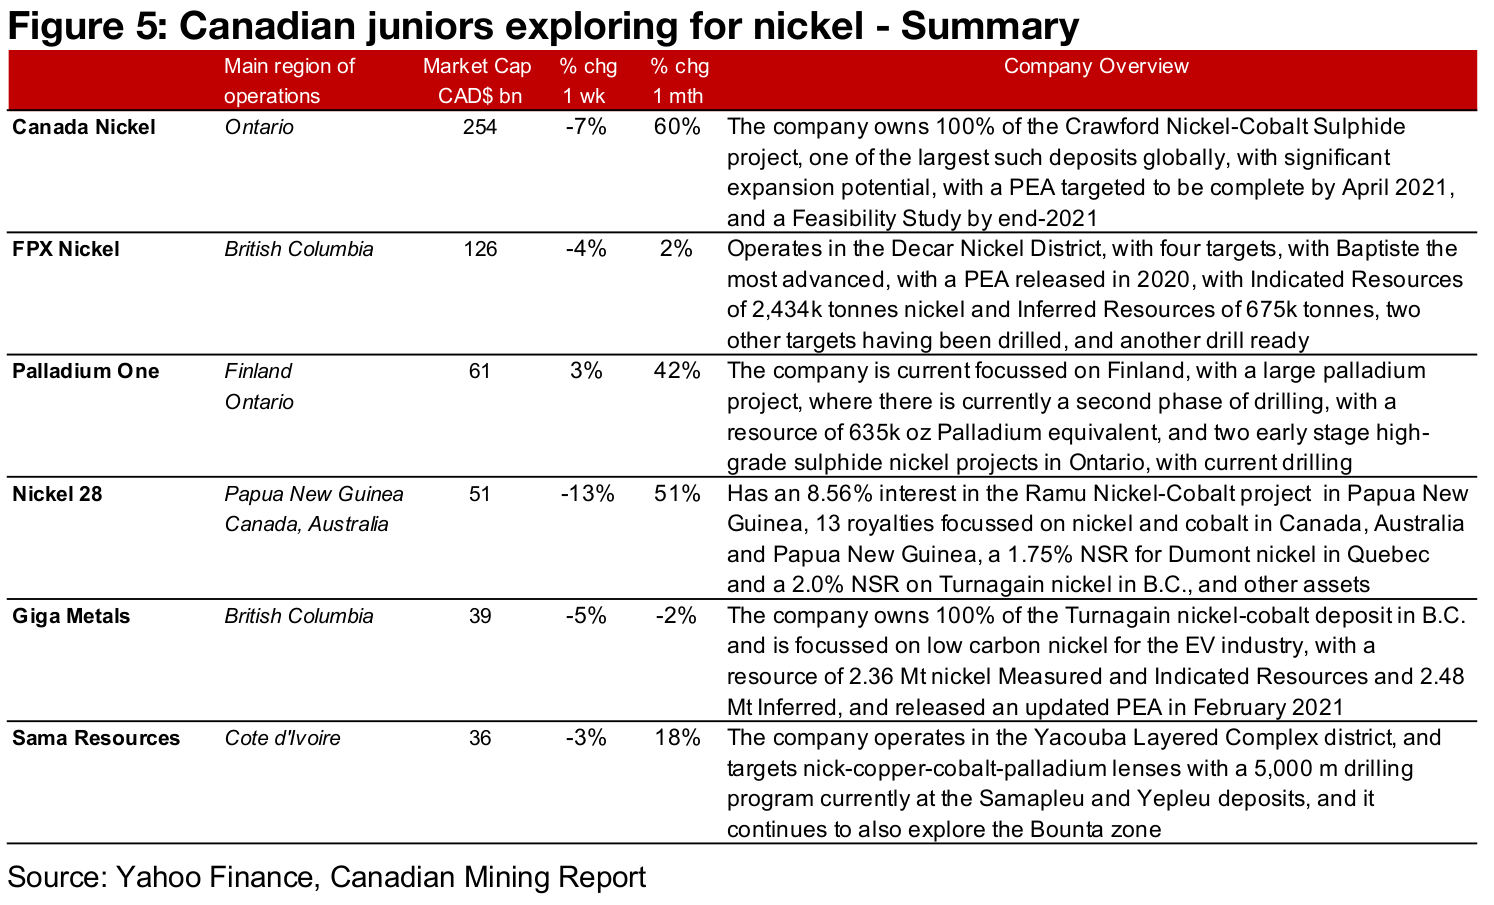 A look at the larger Canadian juniors in base metals